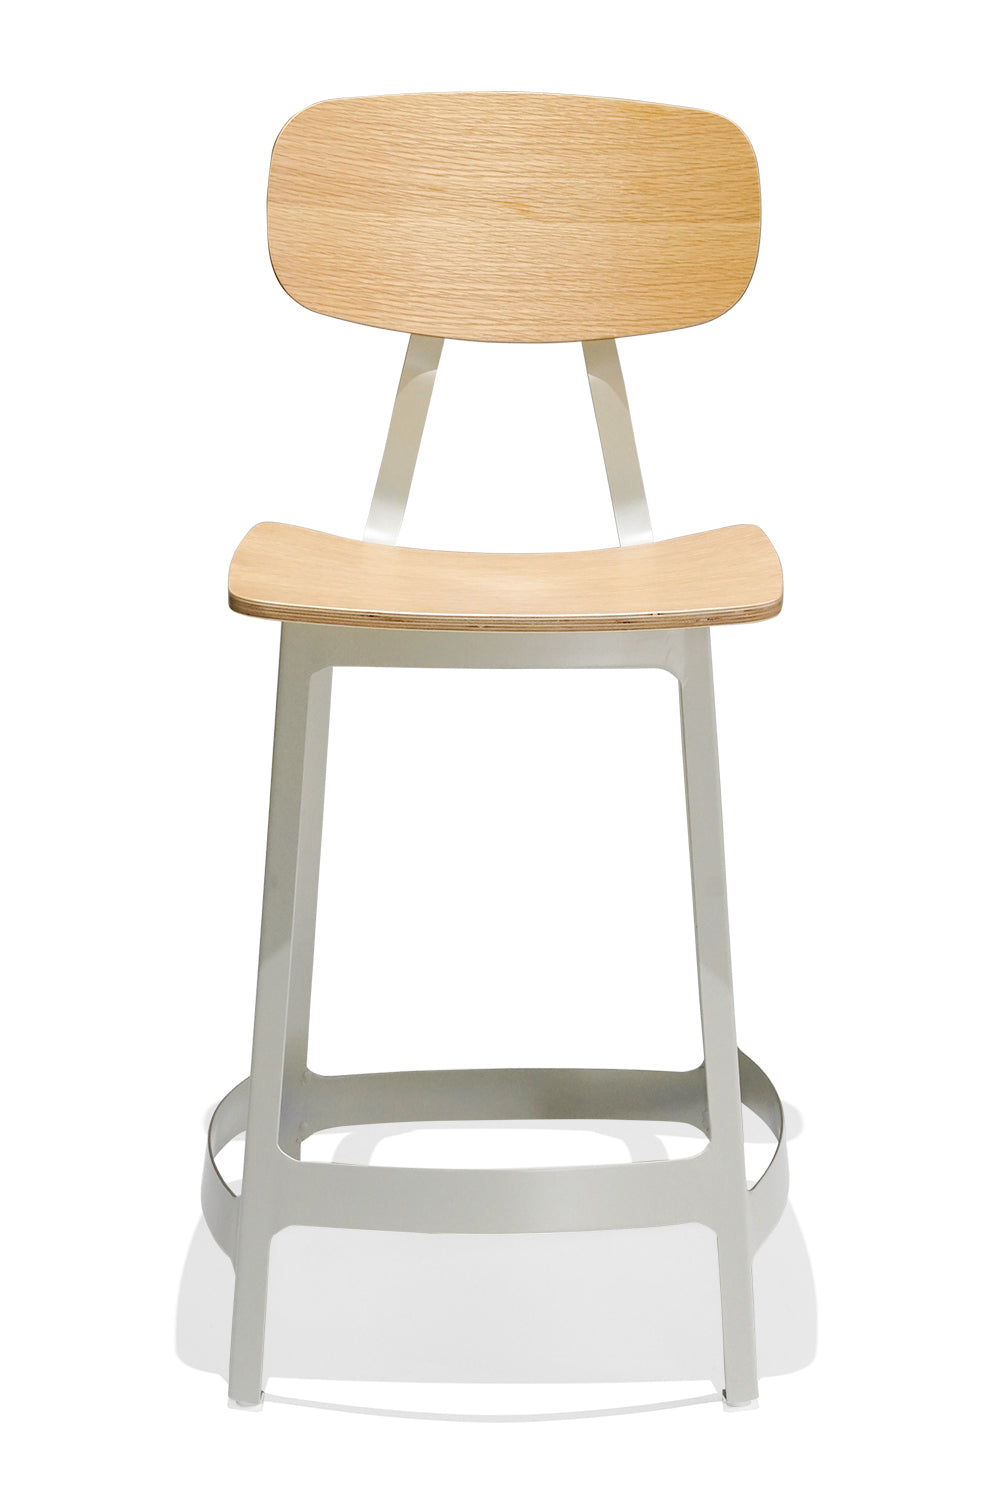 SEPIA bar stool